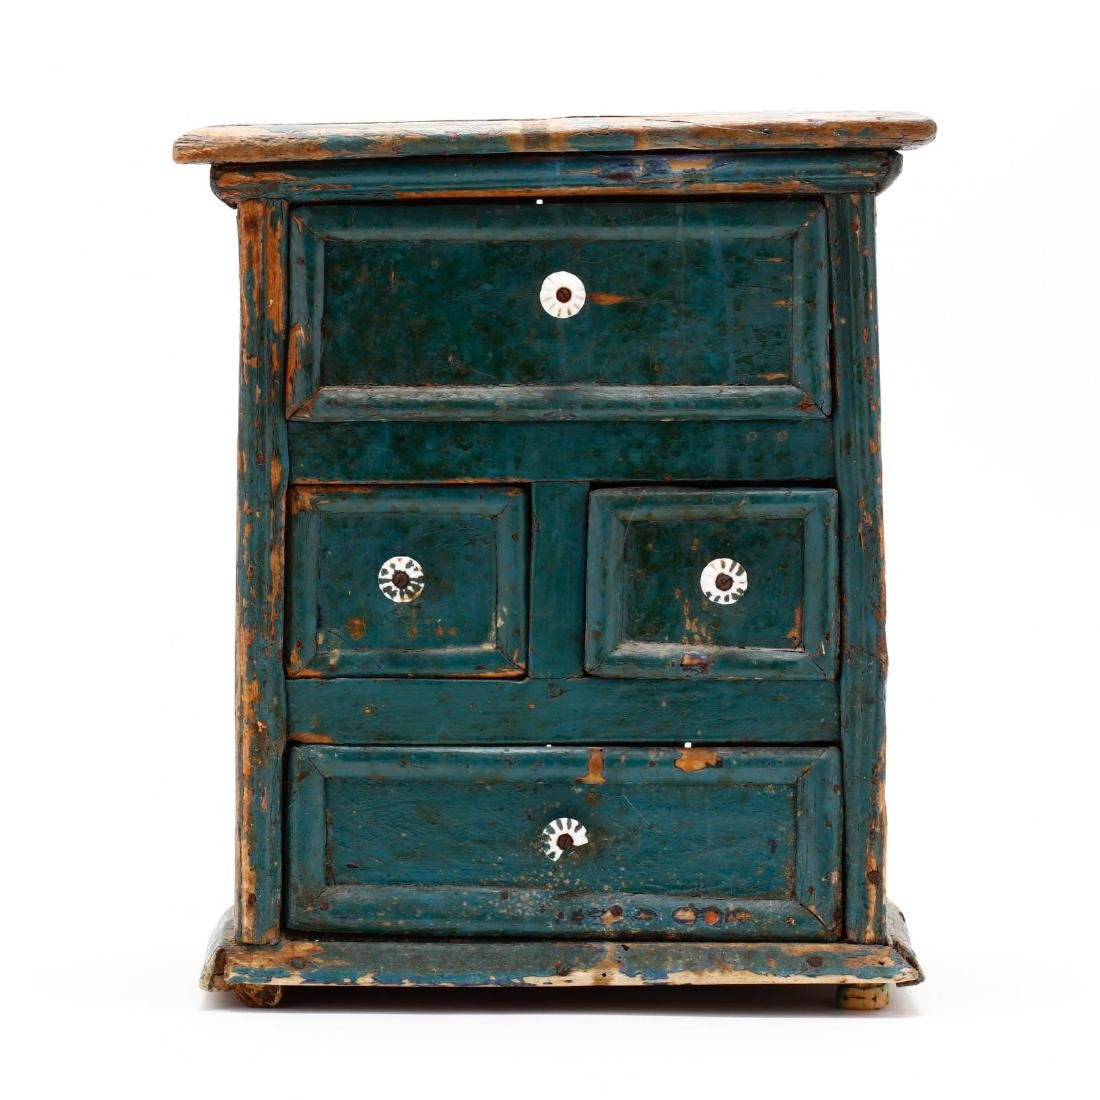 Antique Continental Painted Spice Cabinet - 2